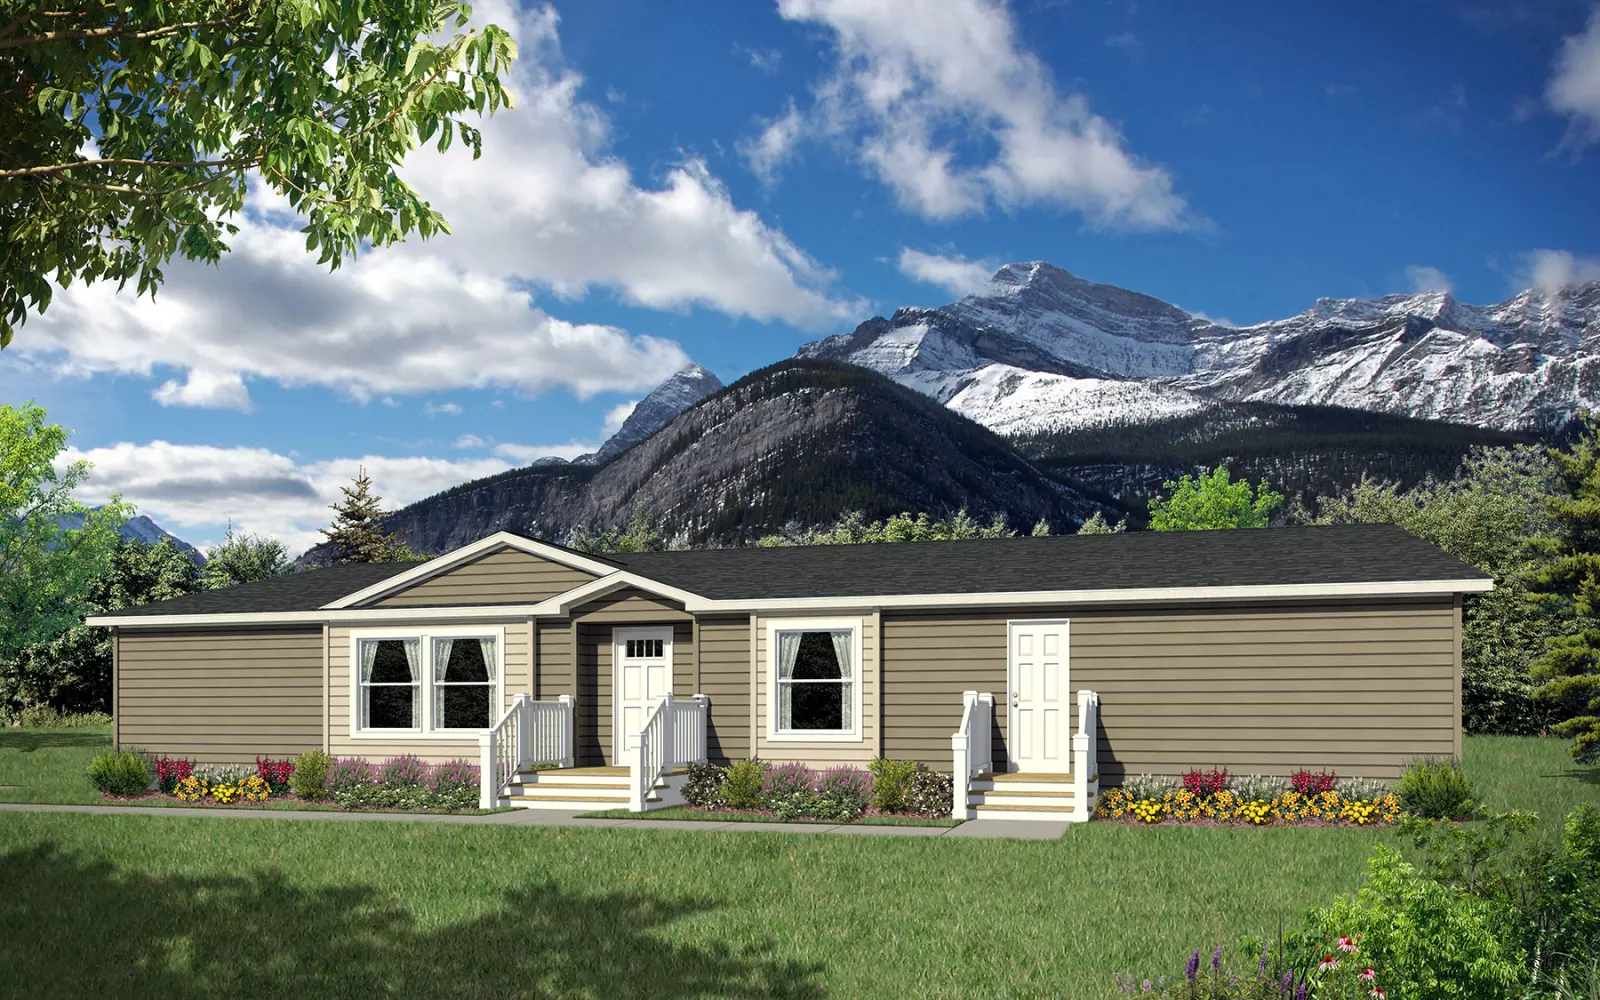 Image of the Champion Homes Avalanche 7664C exterior